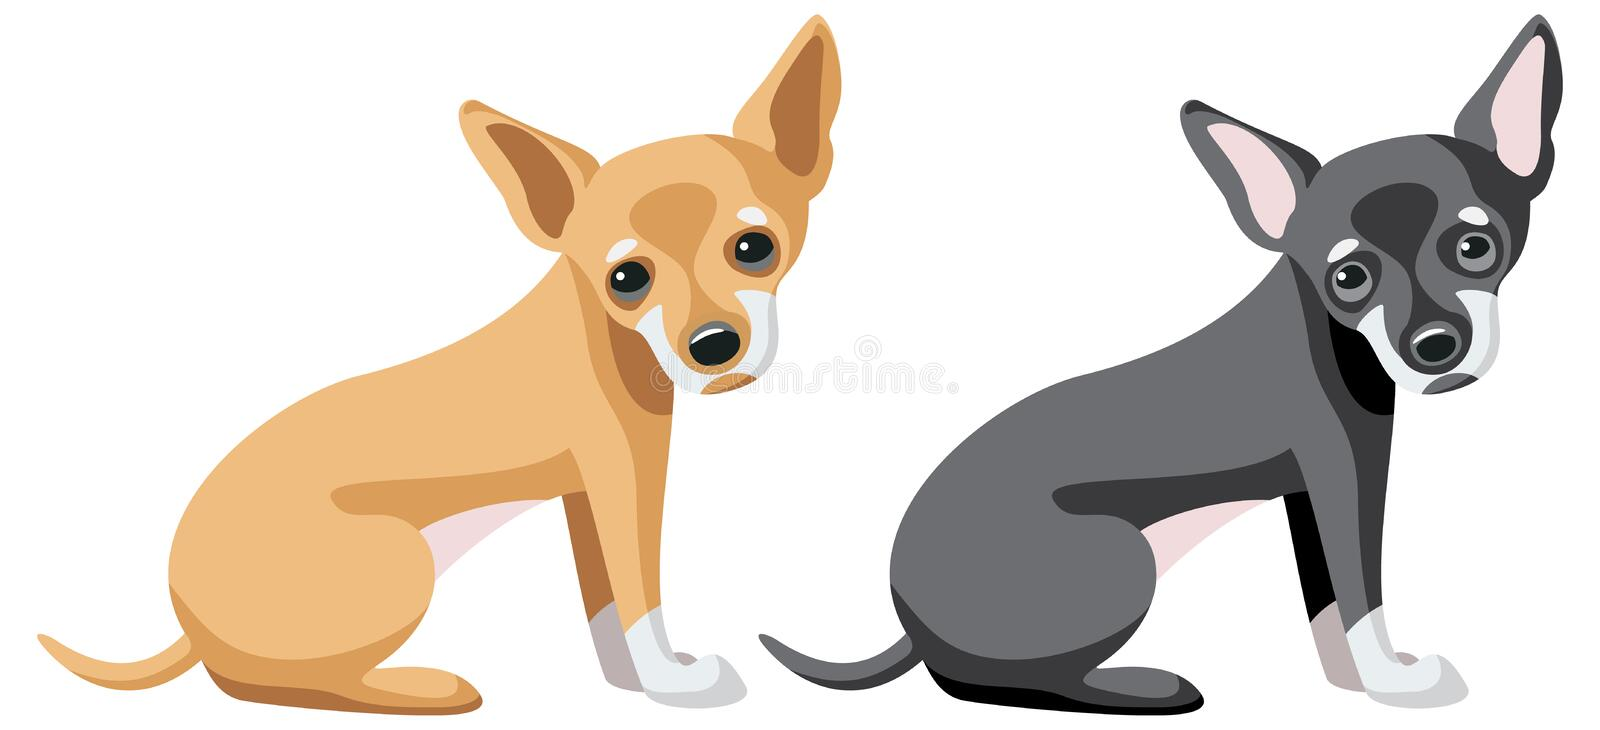 Chihuahua dogs in two different colors. Vector illustration royalty free illustration